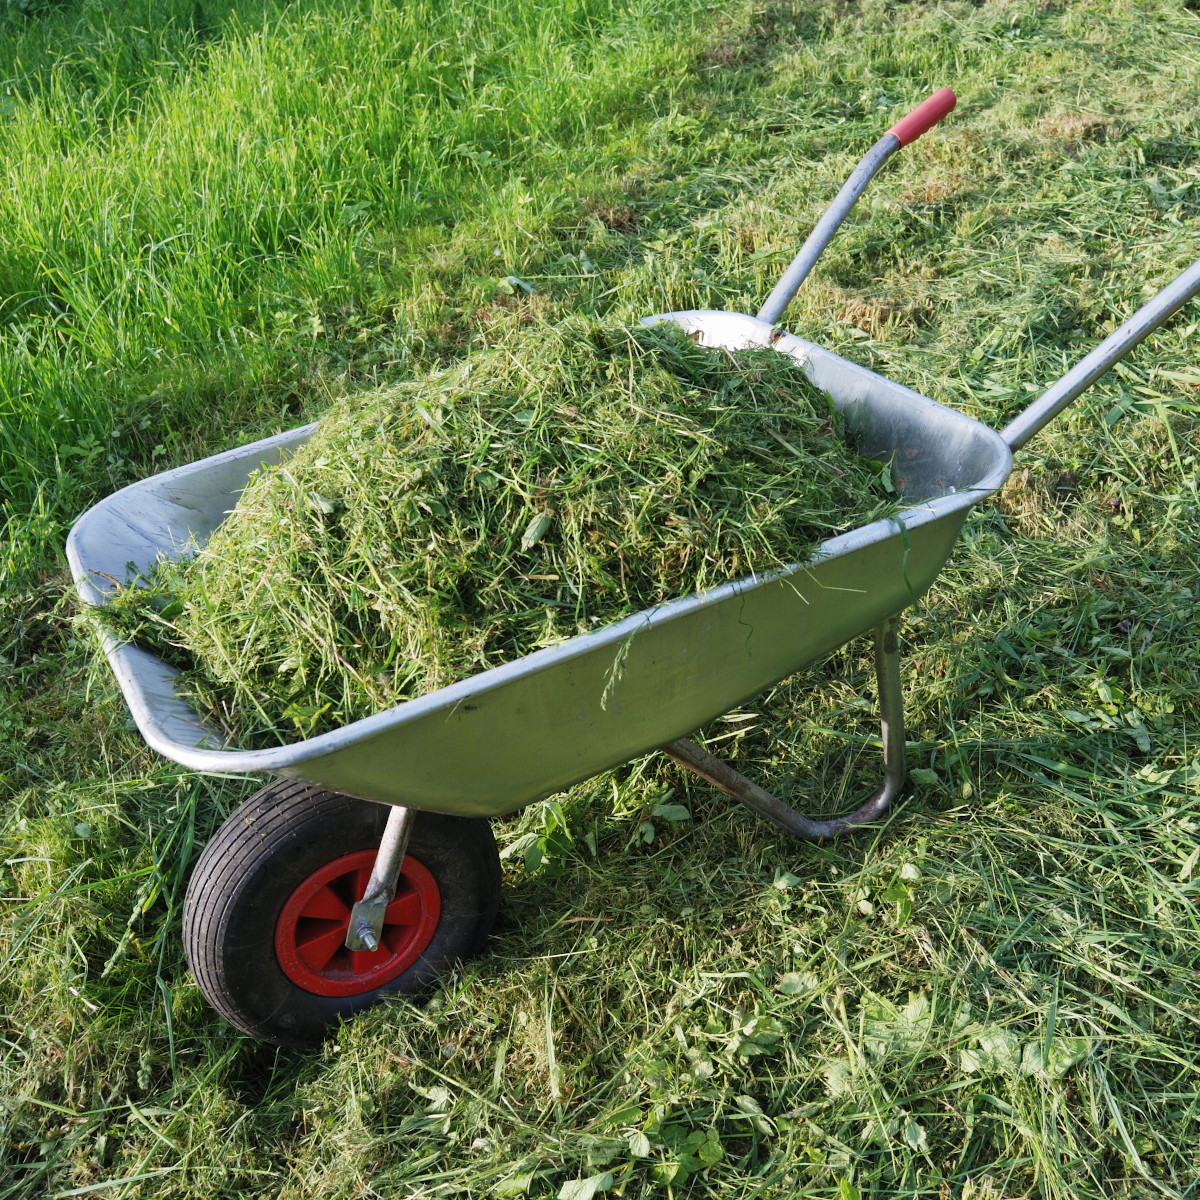 grass clippings in a wheel barrow to be added to a garden to improve soil